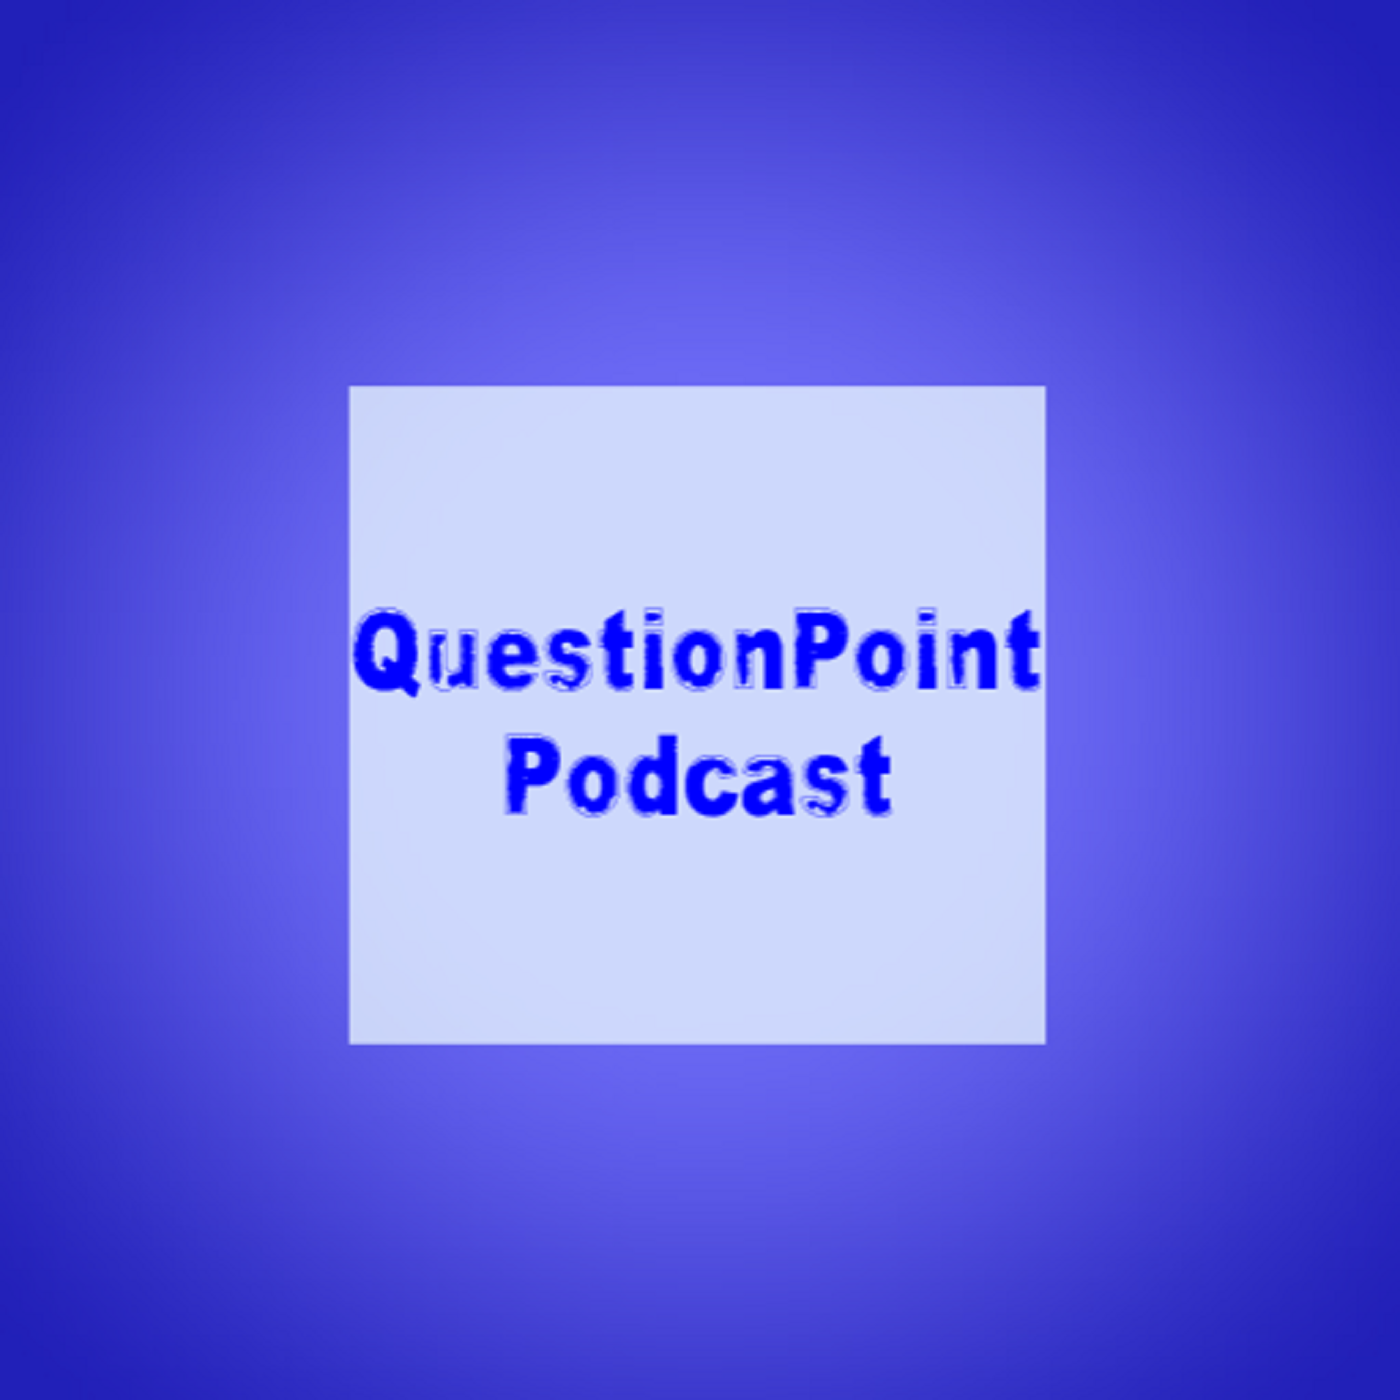 Artwork for podcast QuestionPoint